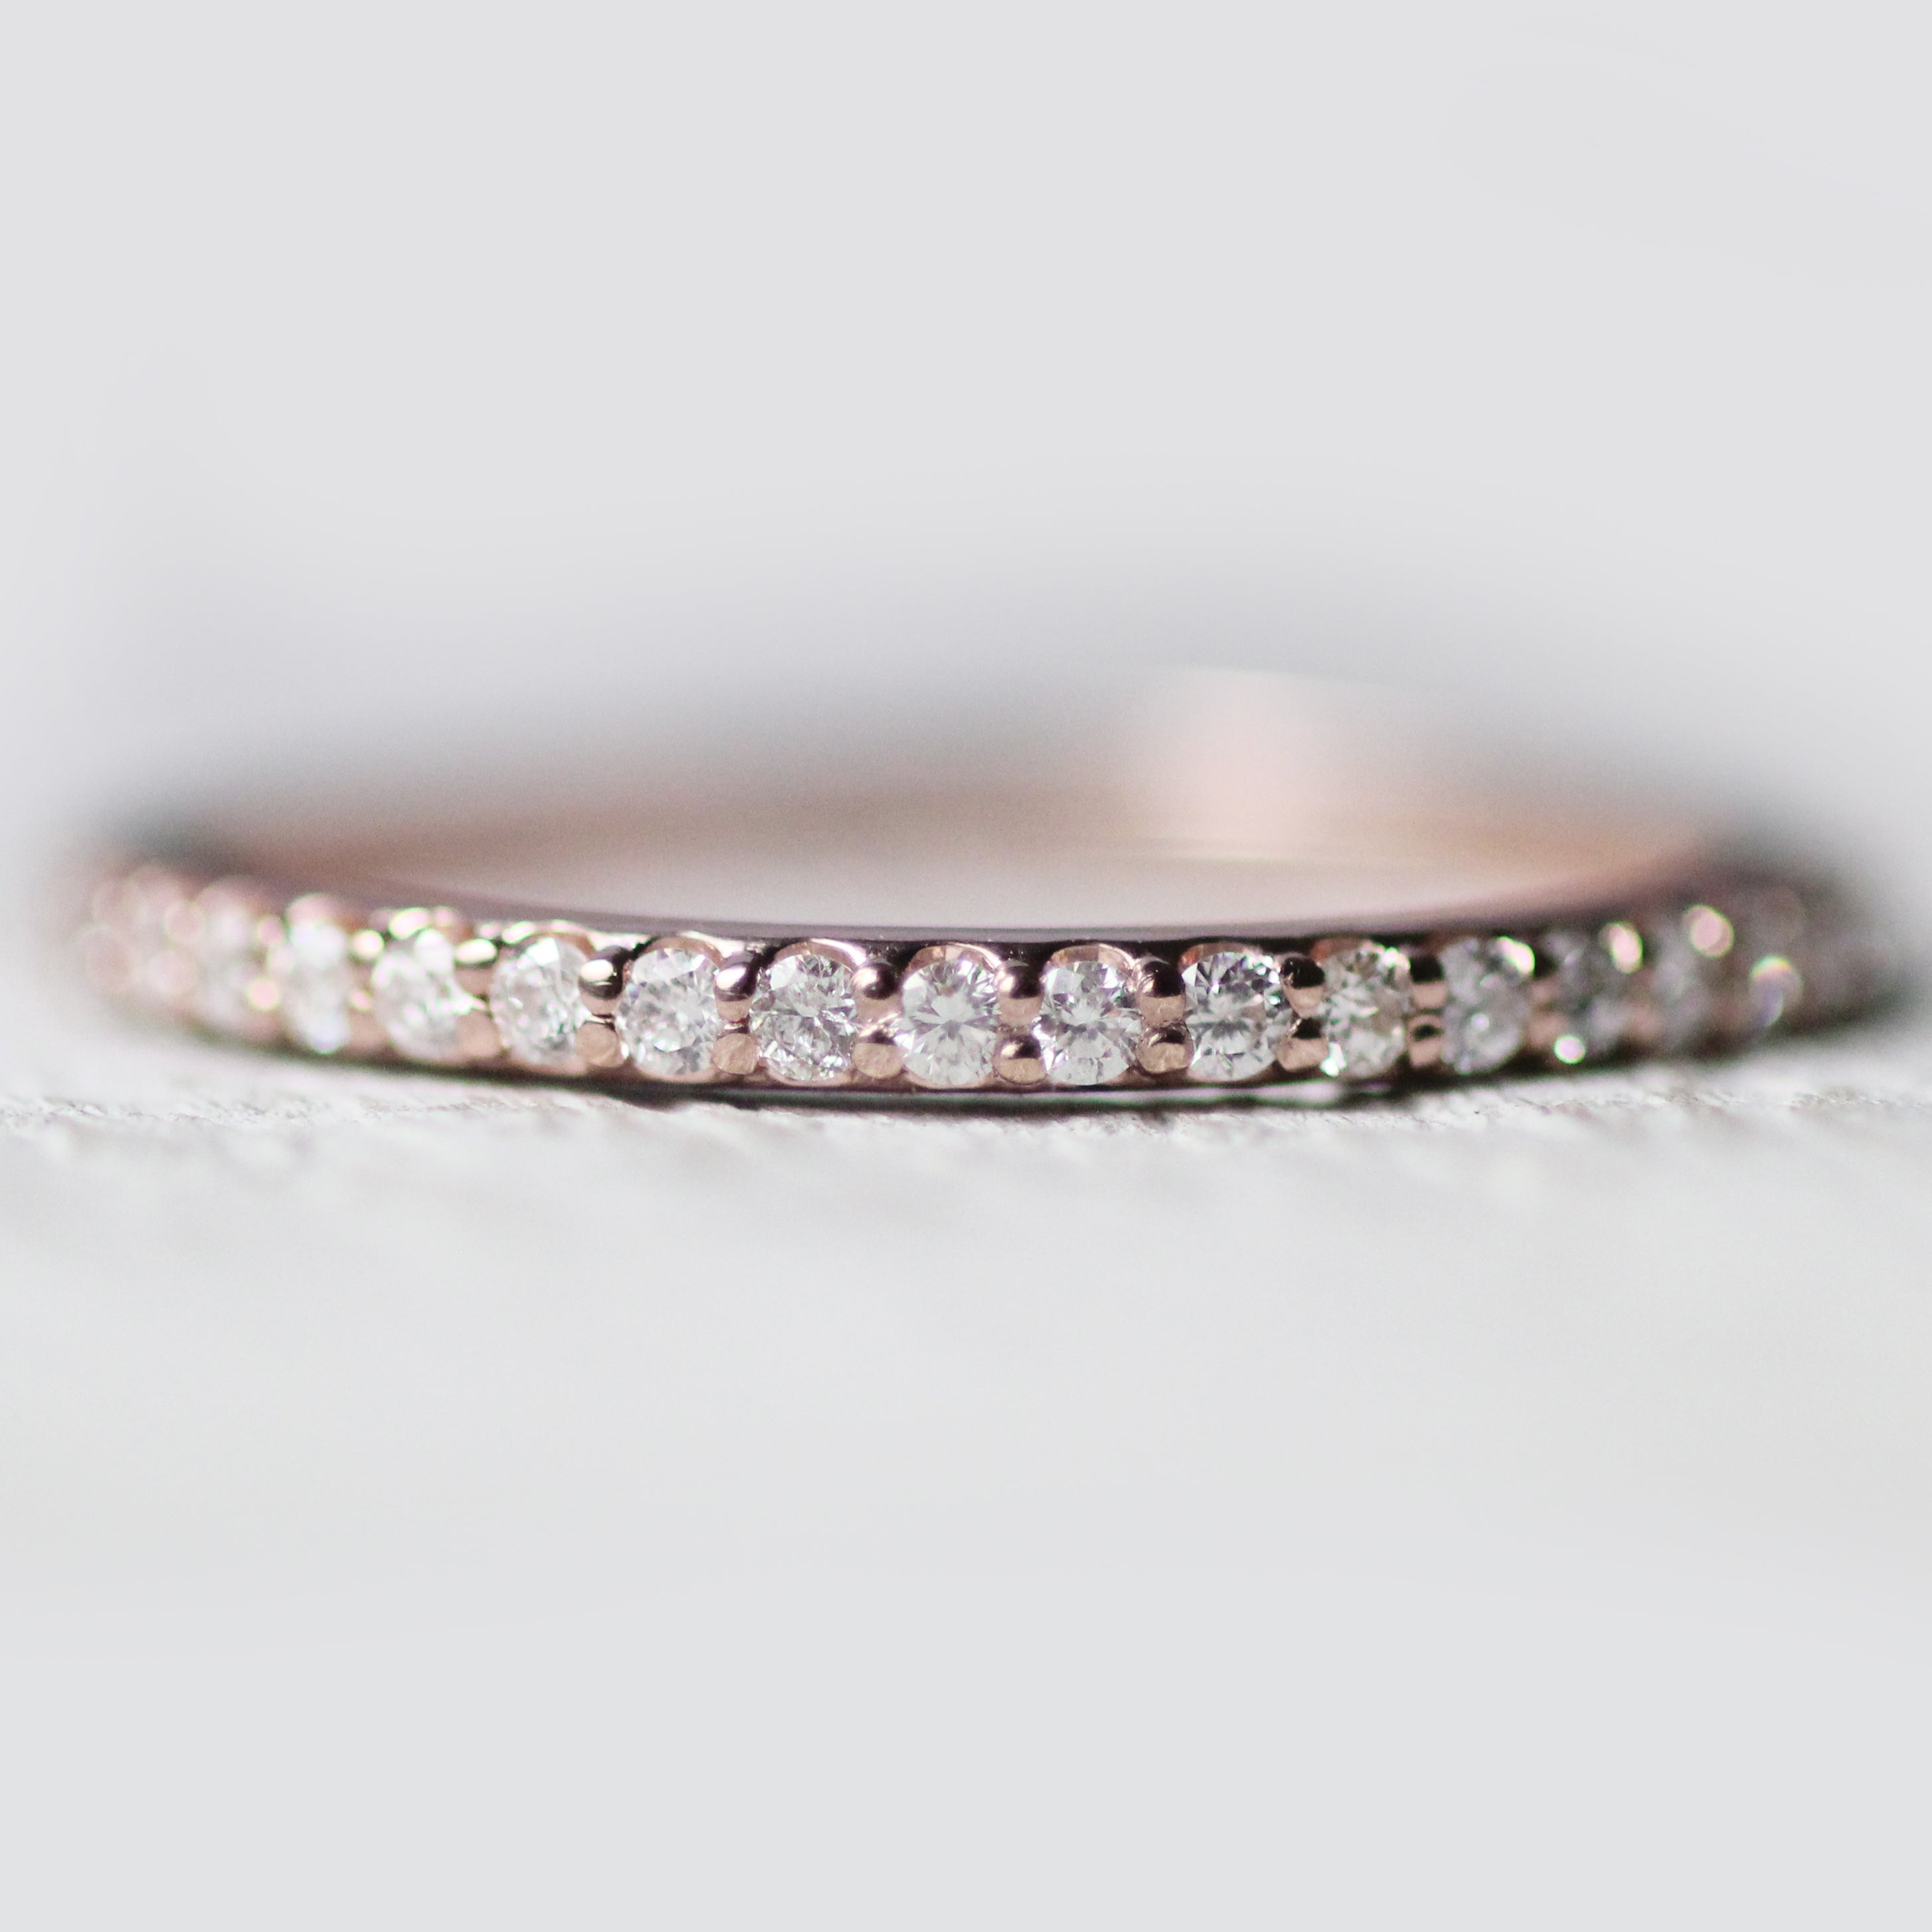 Constance - Pave set, minimal diamond wedding stacking band - Midwinter Co. Alternative Bridal Rings and Modern Fine Jewelry